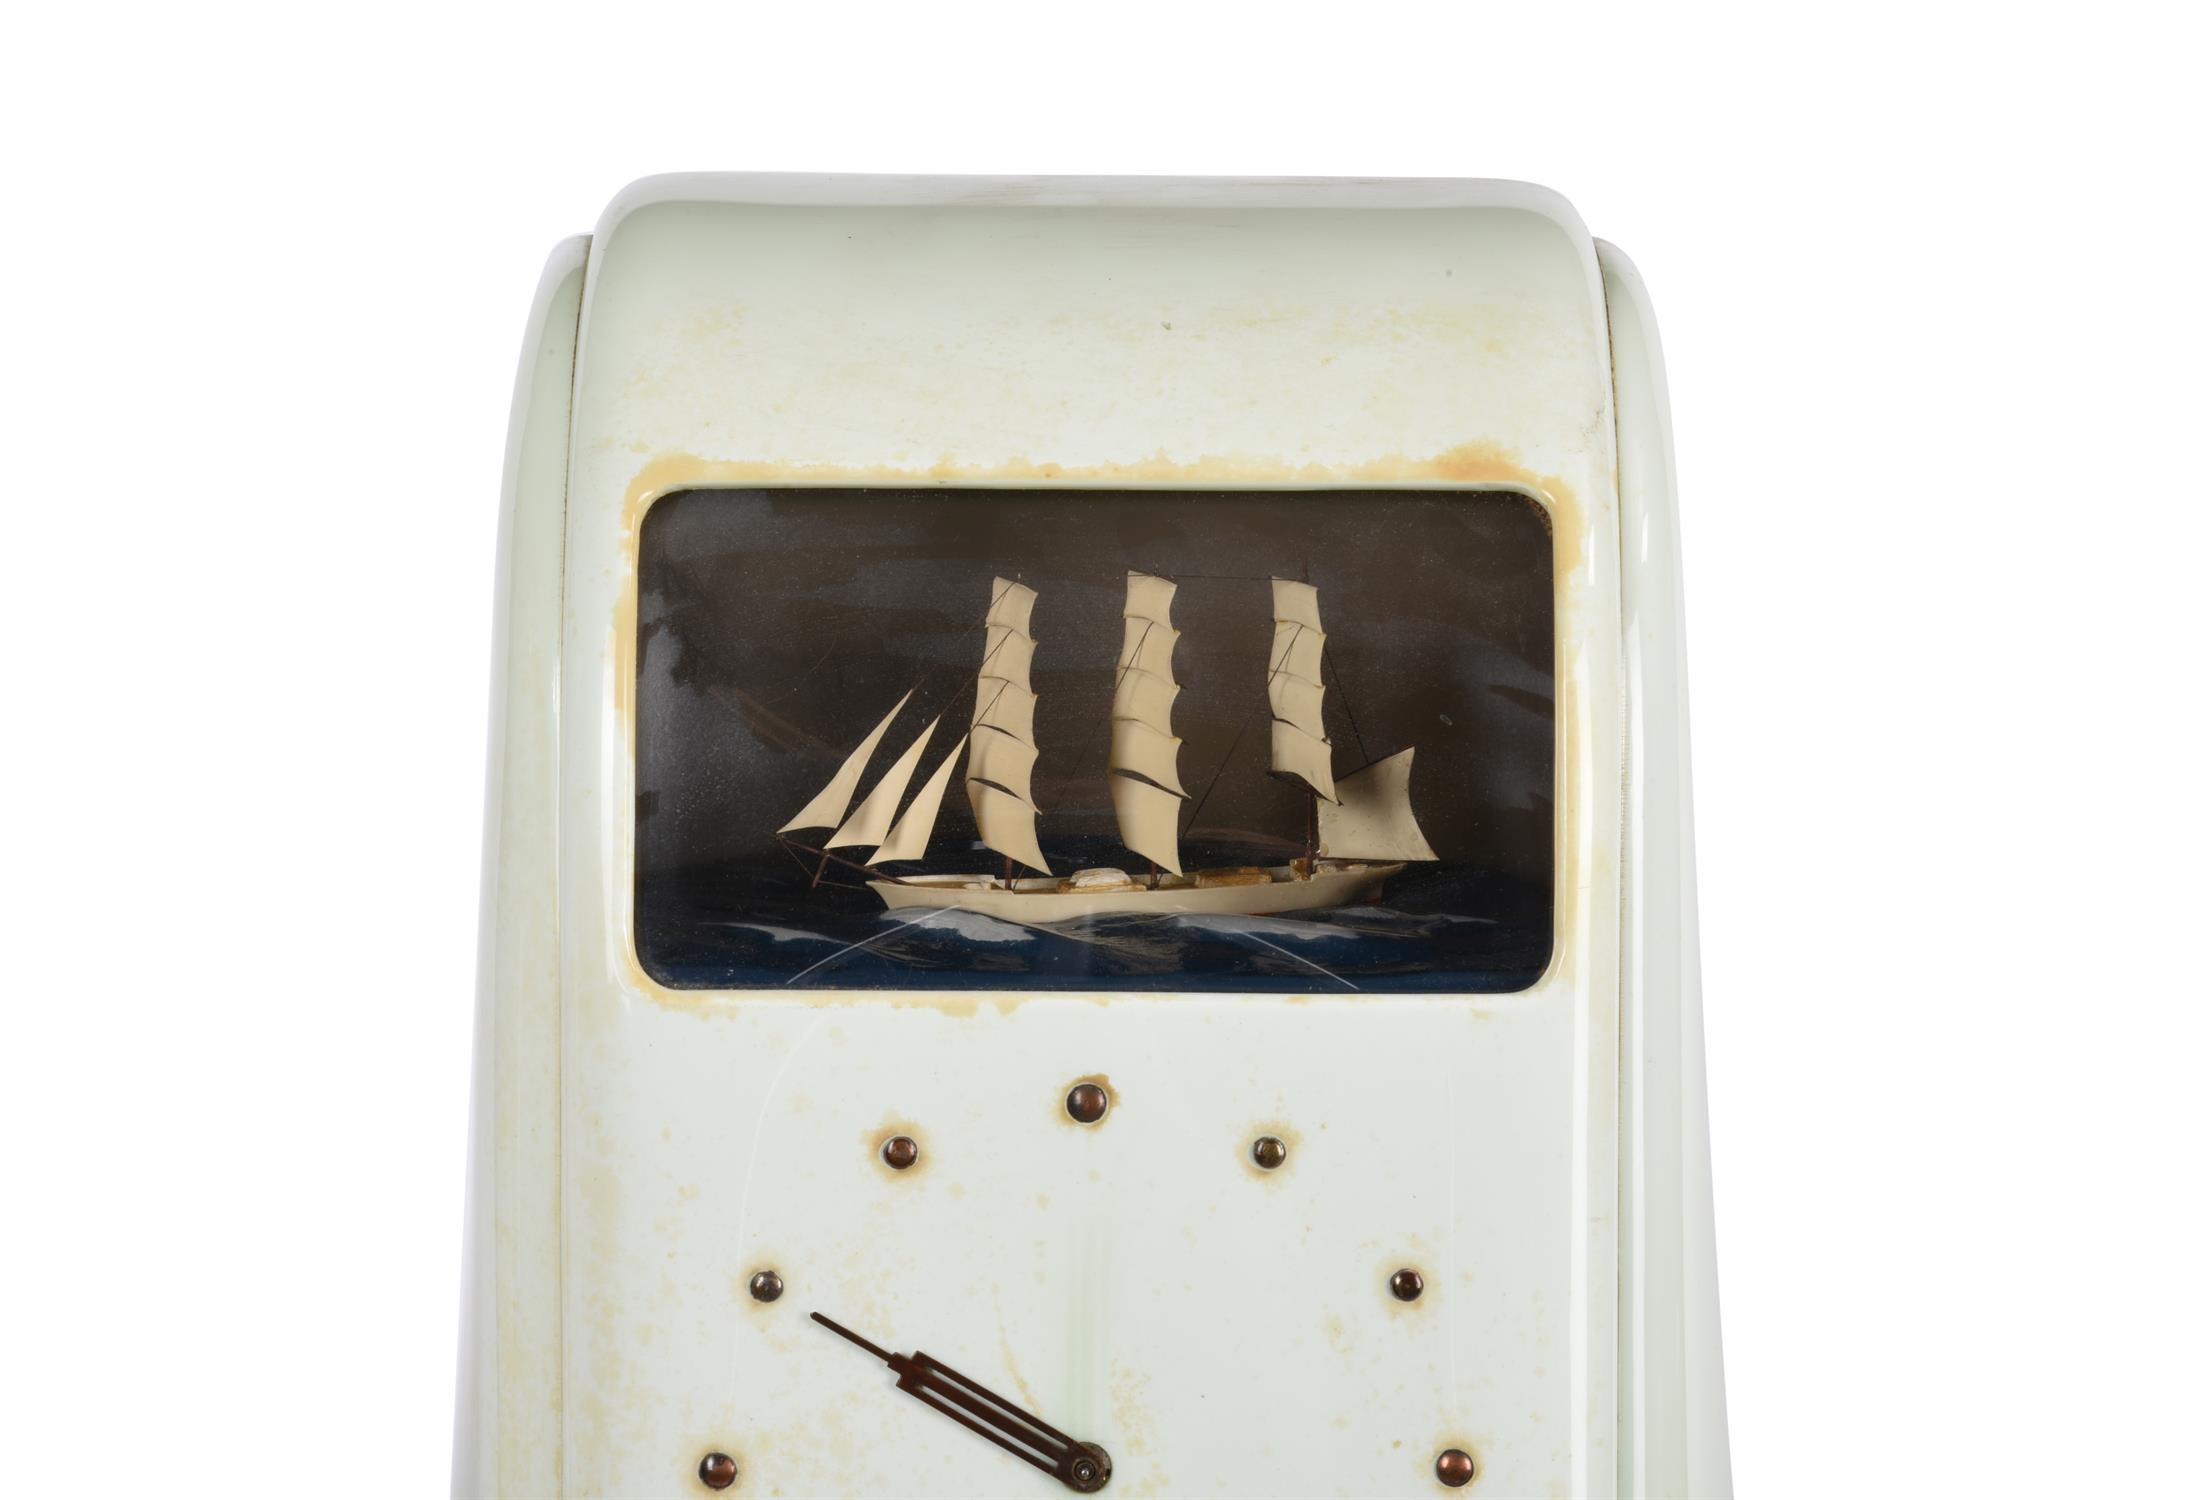 A 'Vitascope' dioramic electric timepiece - Image 2 of 4